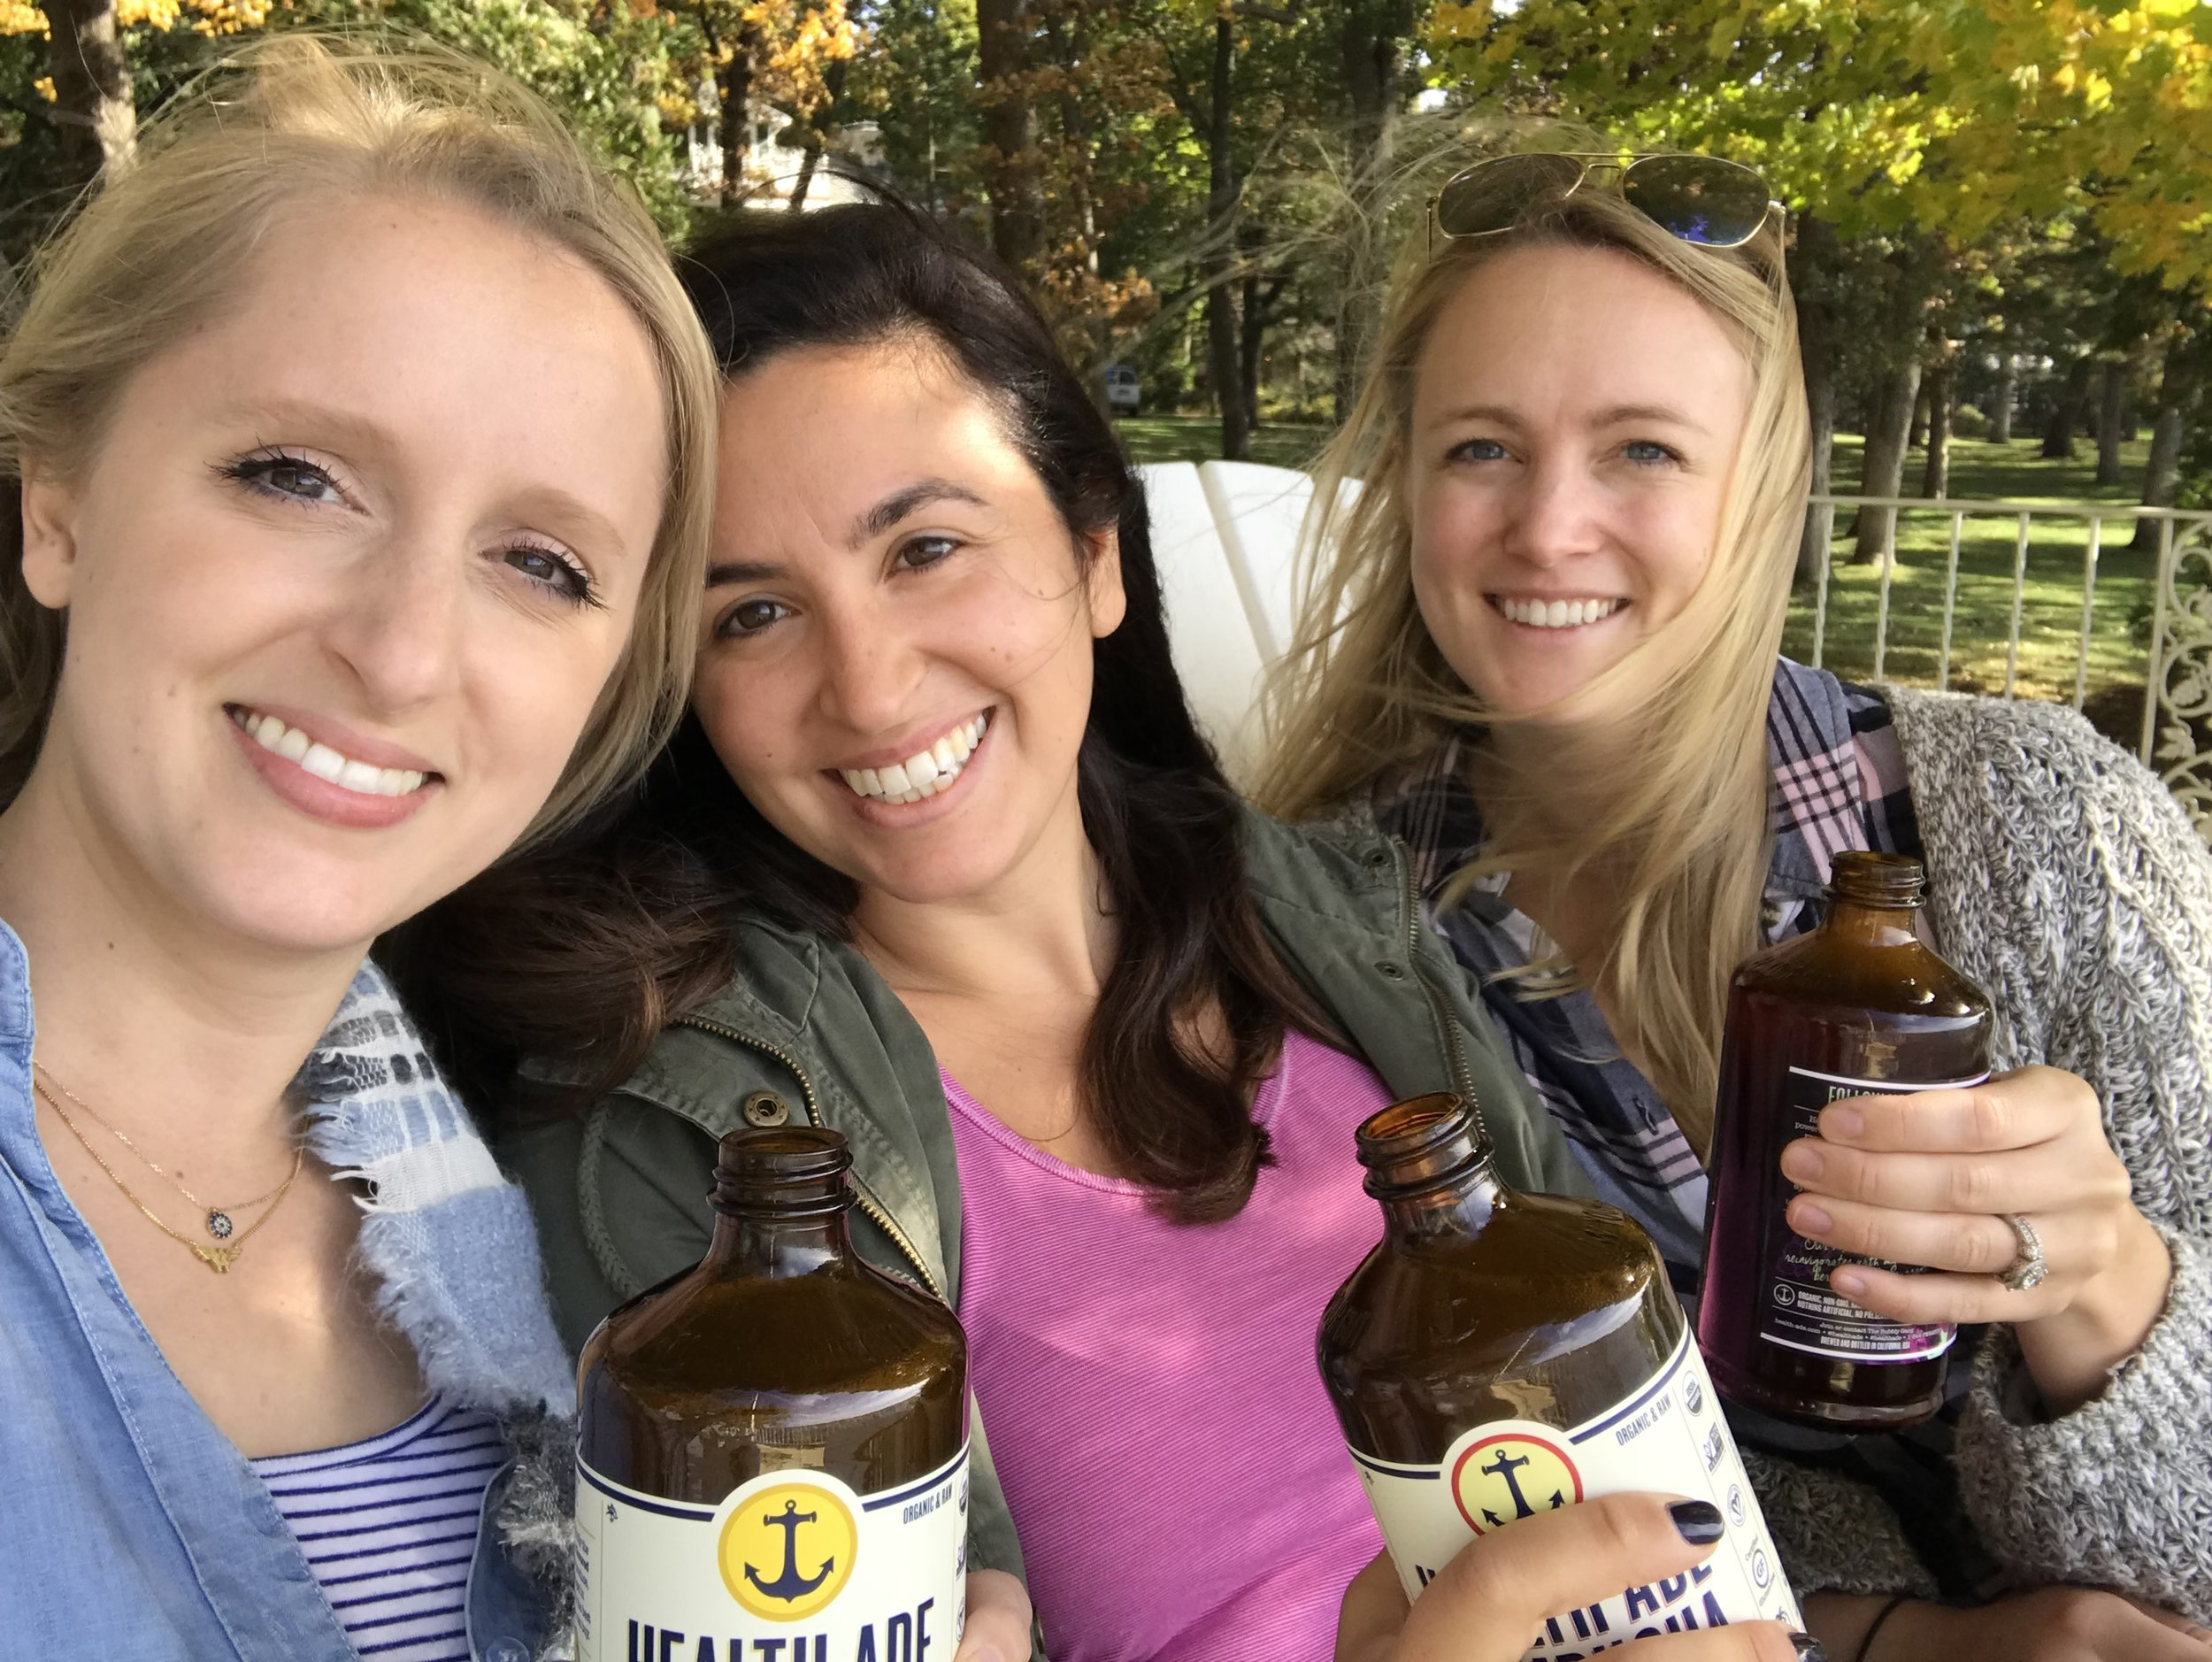 Drankin 'booch with 2 of the our #shedteambabes (Emily on left, Colleen on right!)